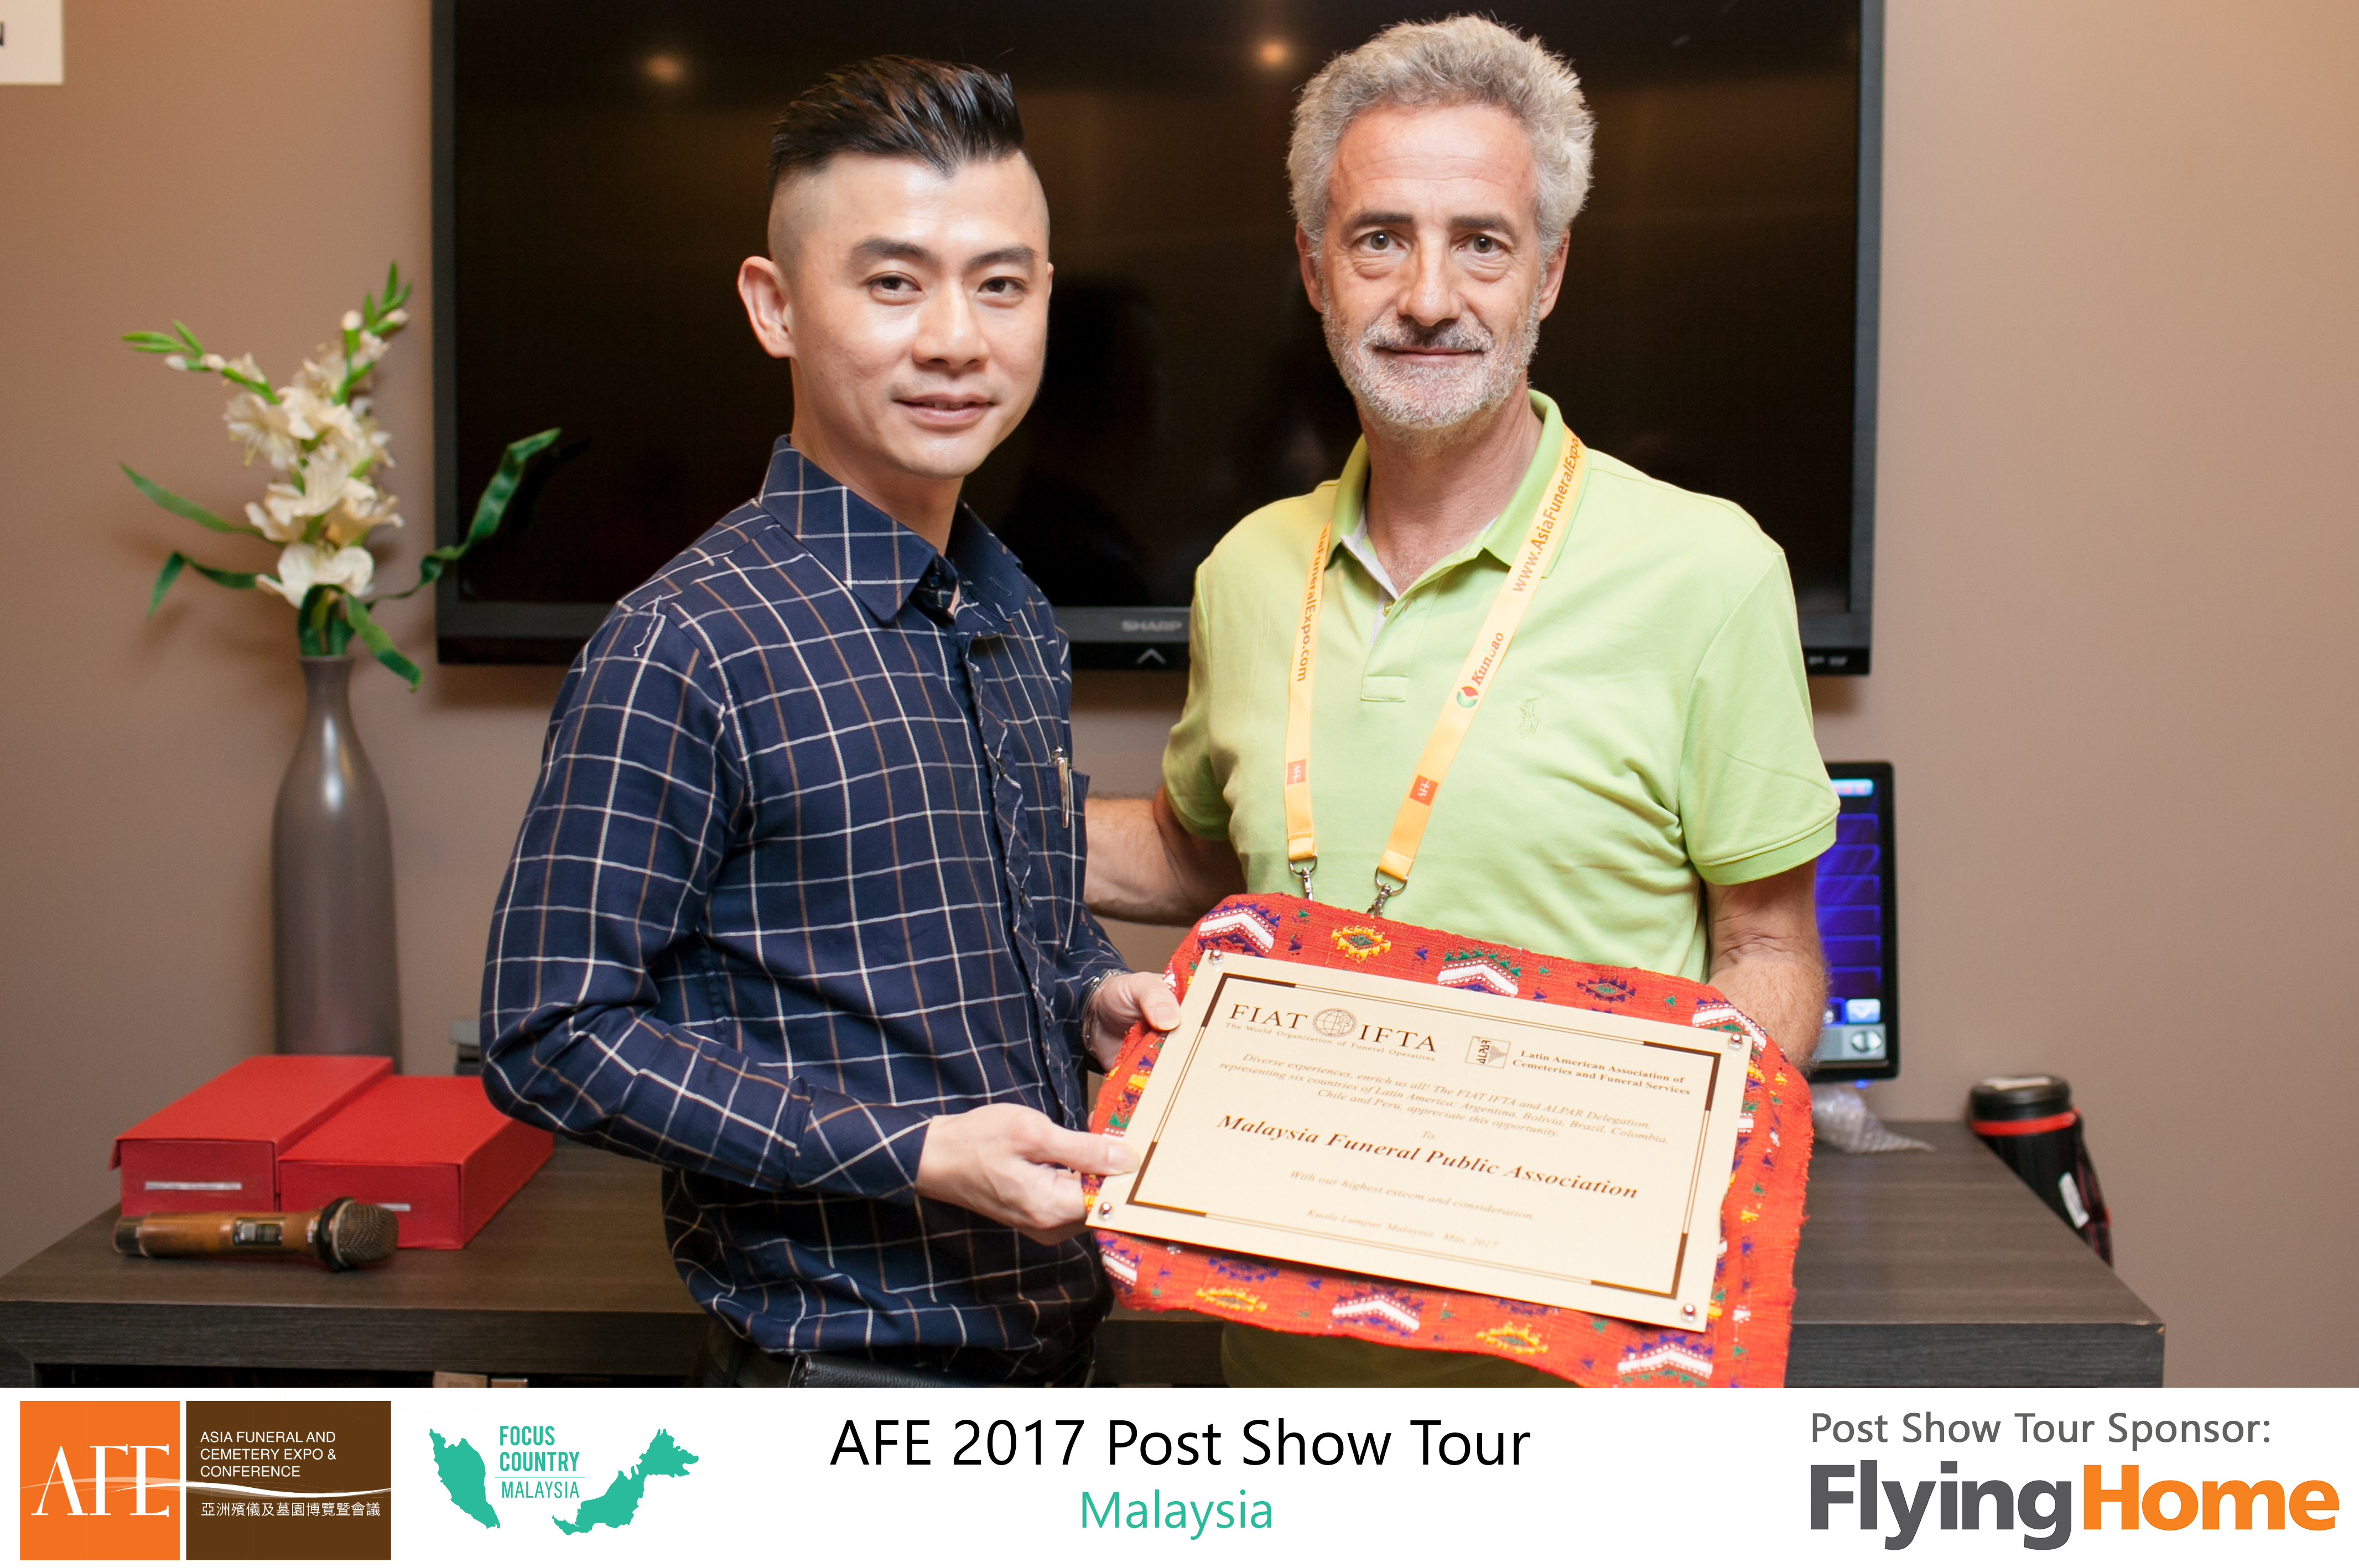 AFE Post Show Tour 2017 Day 1 - 19